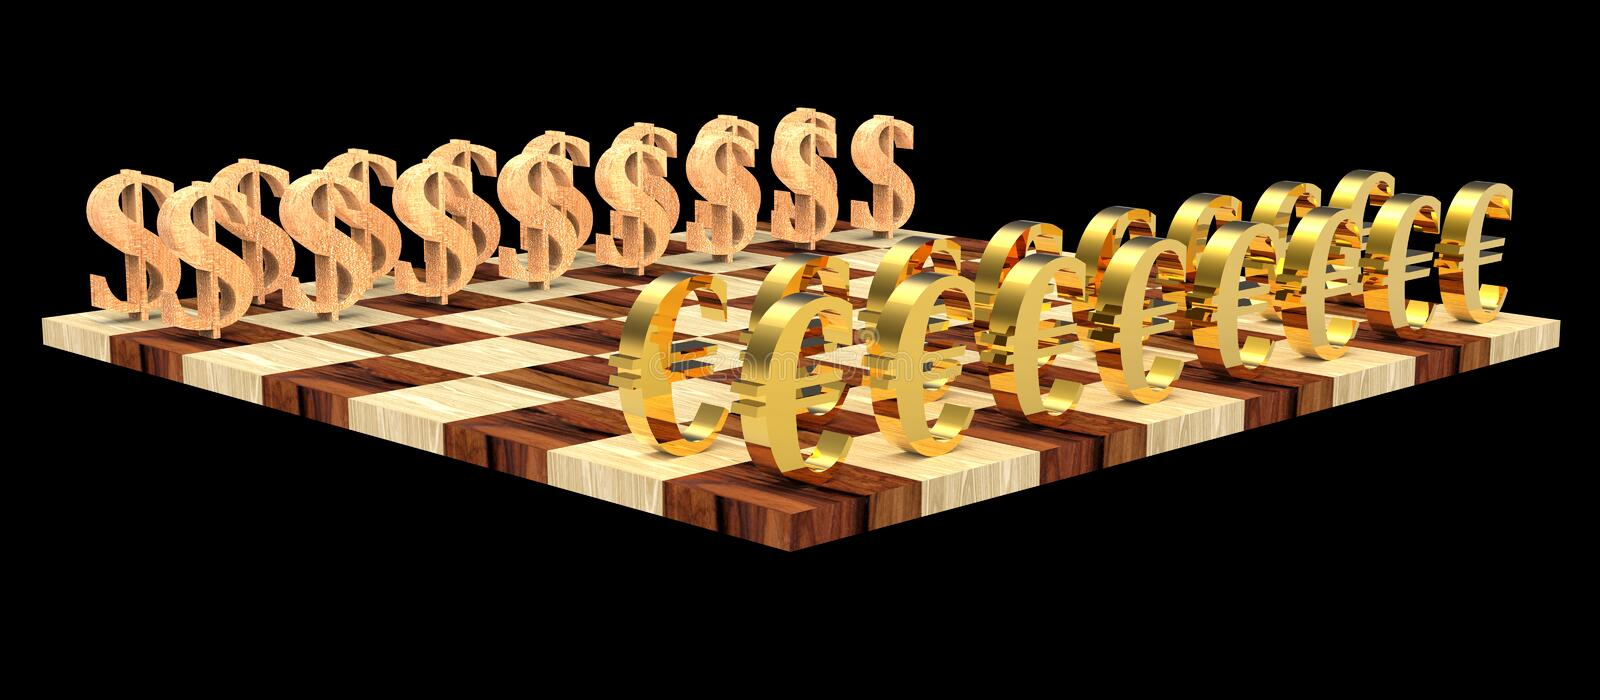 3D chess royalty free stock images